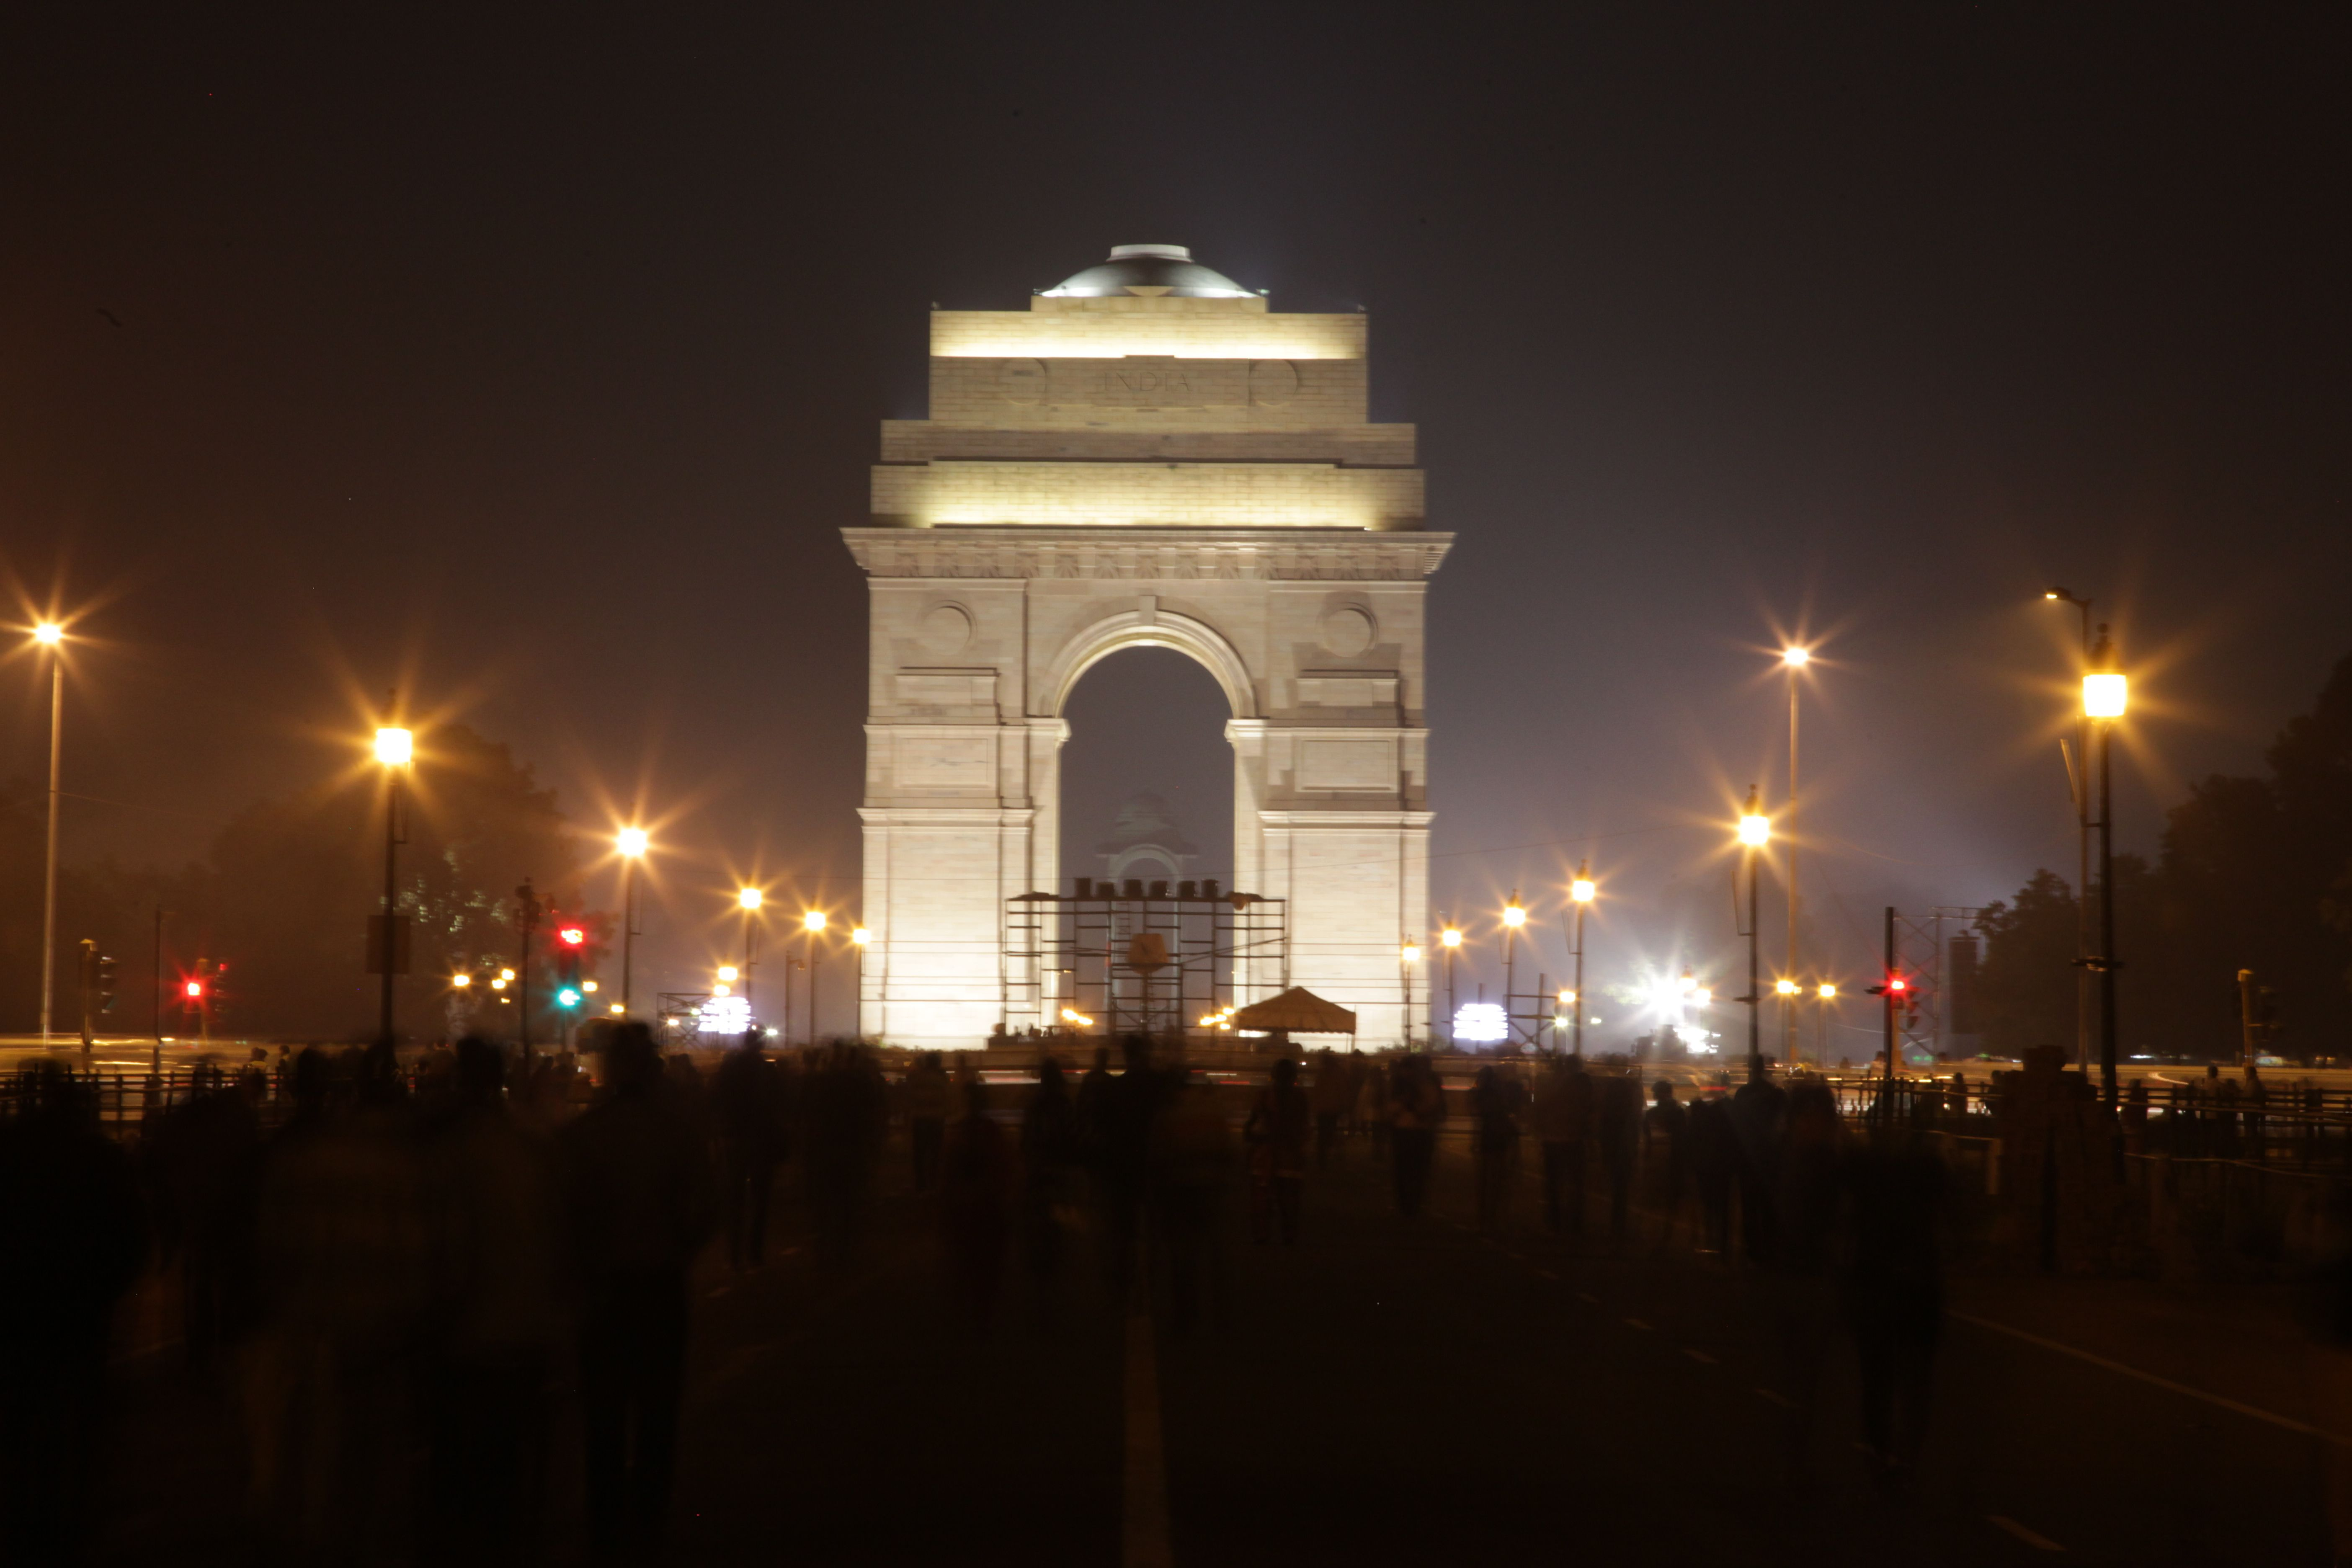 arch in India inspired by Arc de Triomphe located in Paris, which in turn is inspired by the Roman Arch of Titus